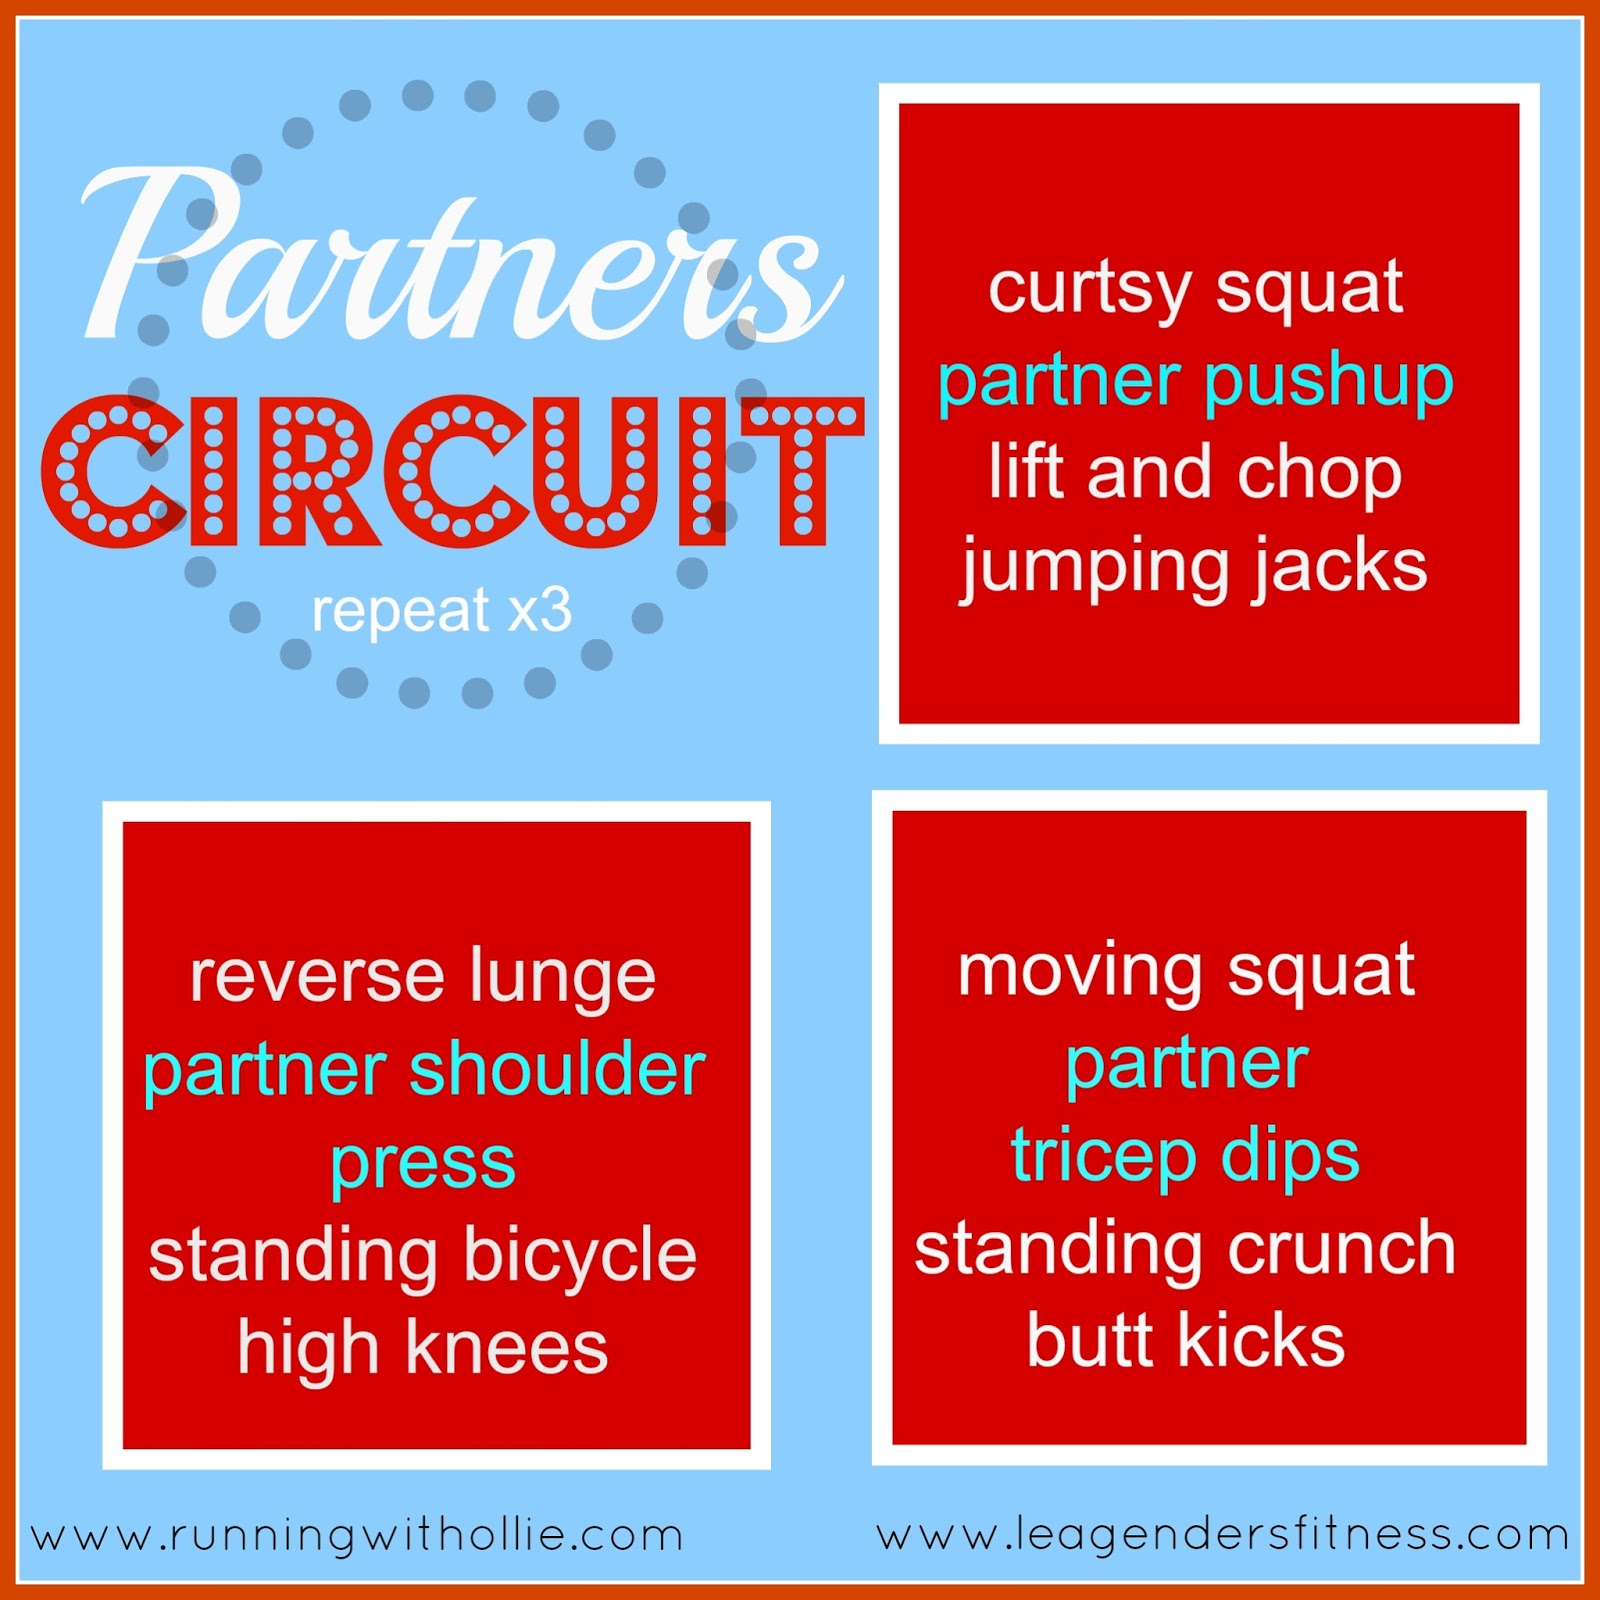 RUNNING WITH OLLIE: Pay Fit Forward: The Power of Partners ...